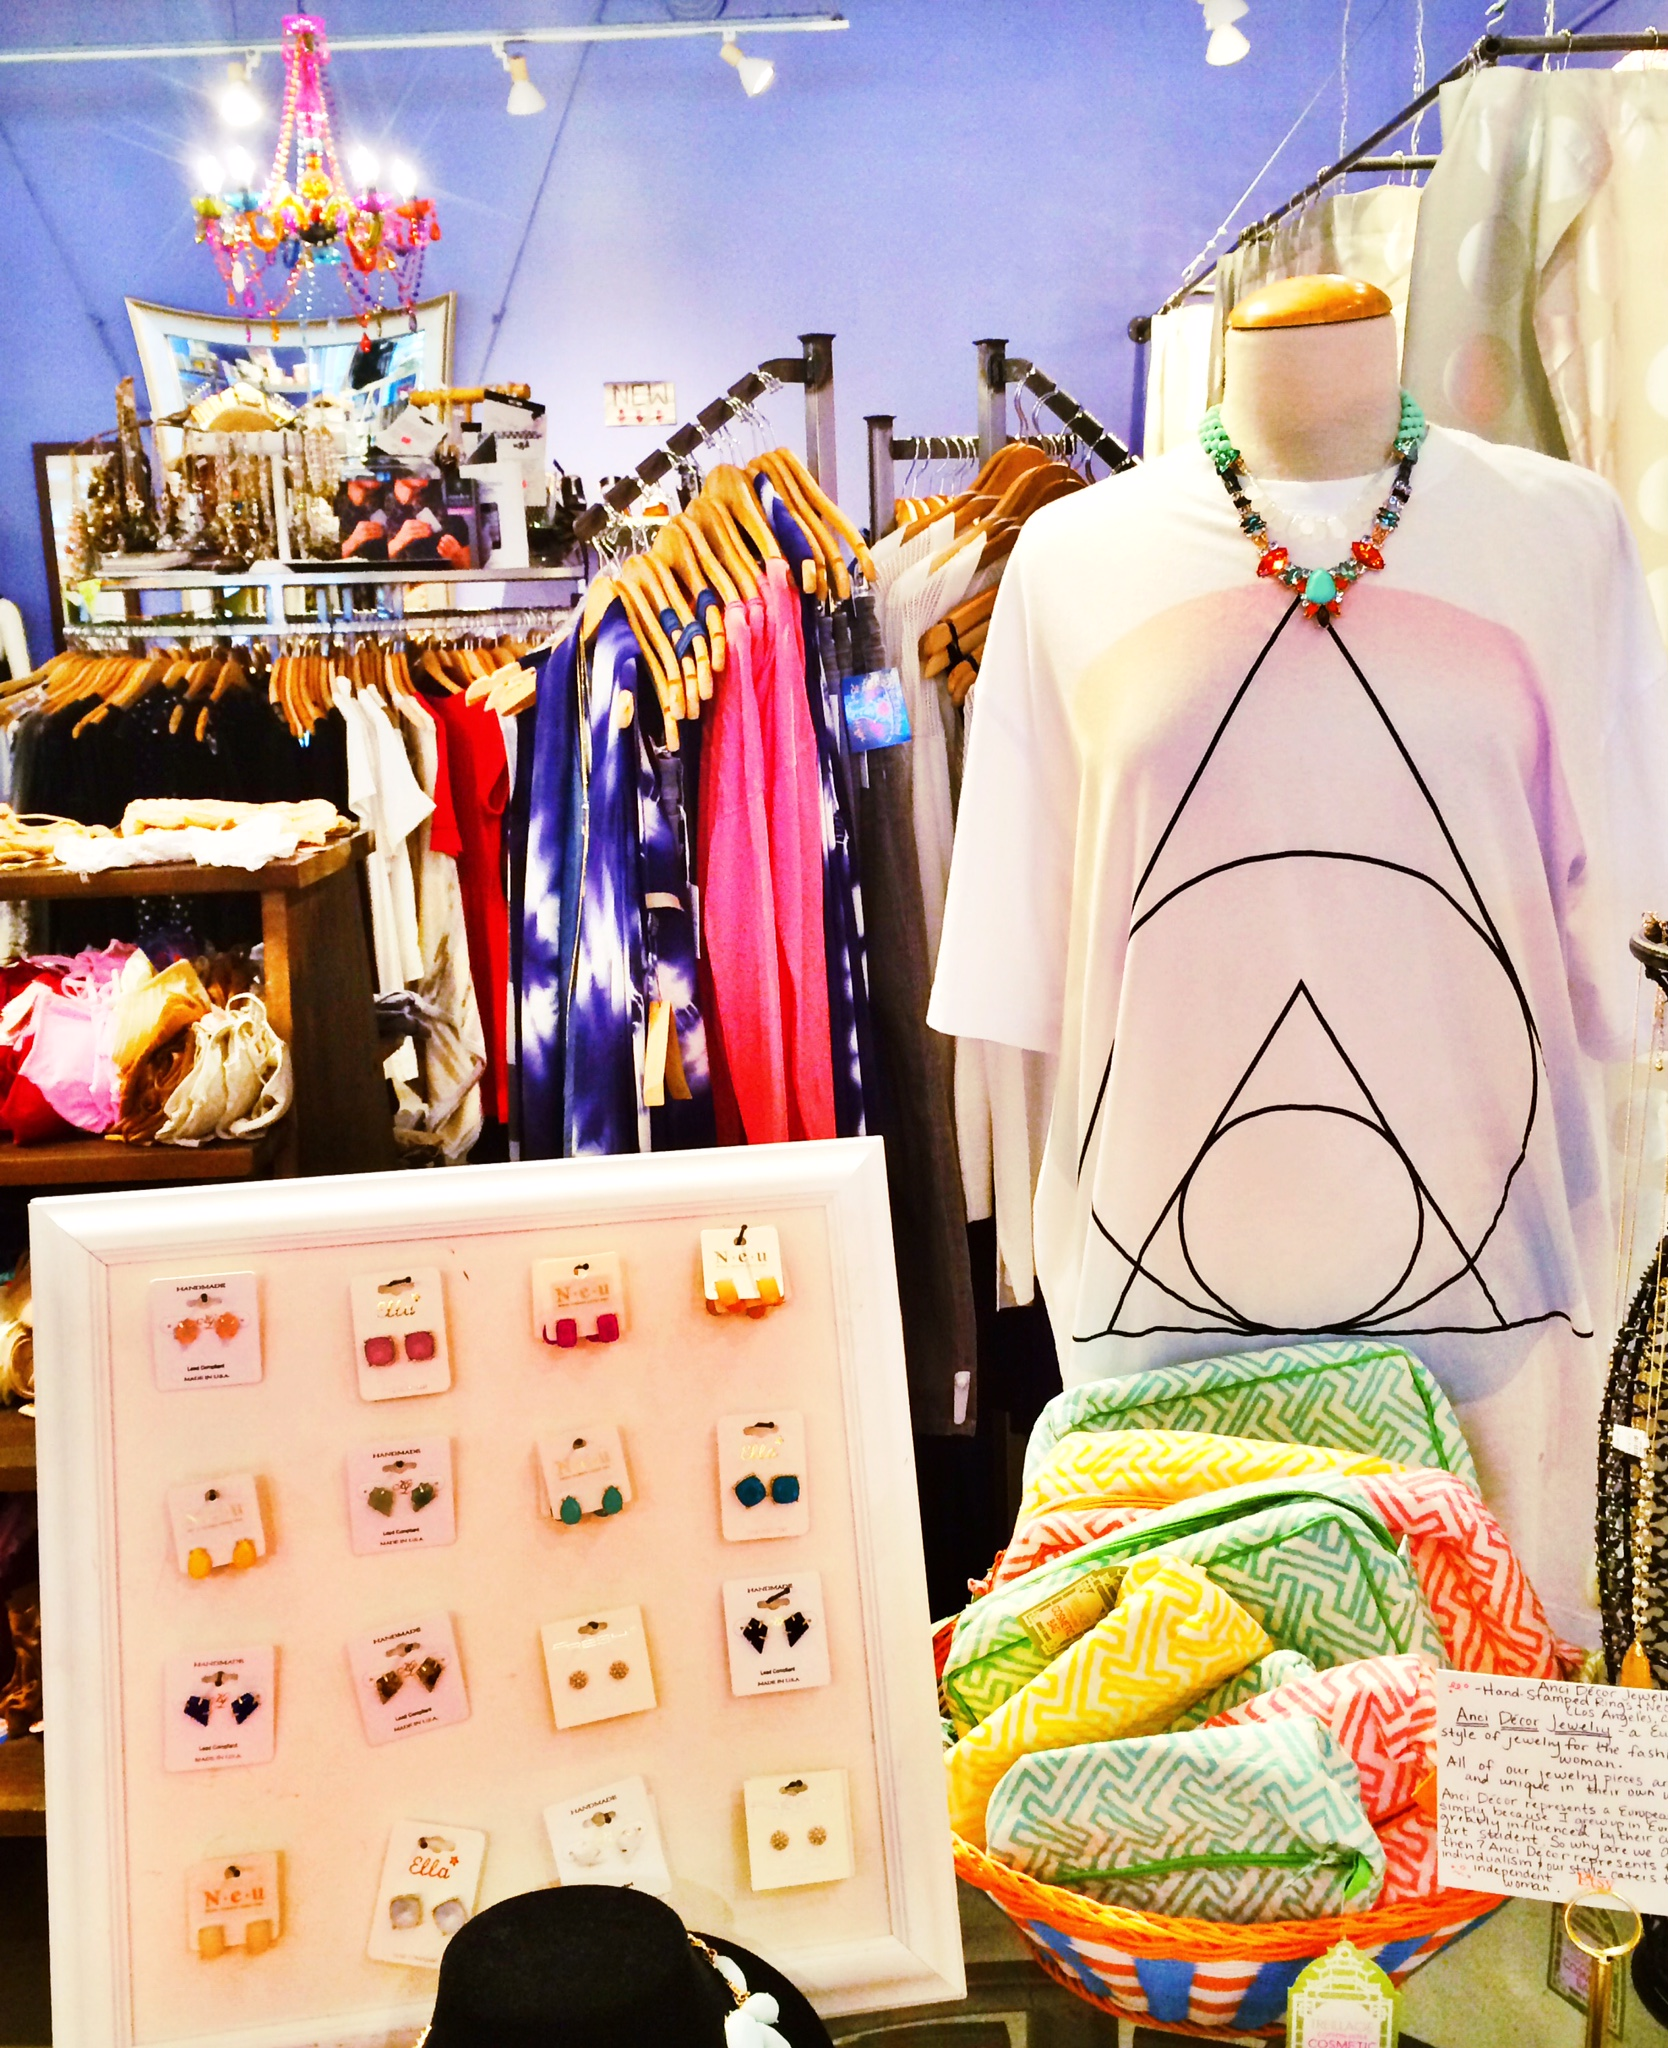 Raquel Greer Gordian discusses how Blue Elephant is a boutique where you can find some new boho garments and accessories to style before SXSW.